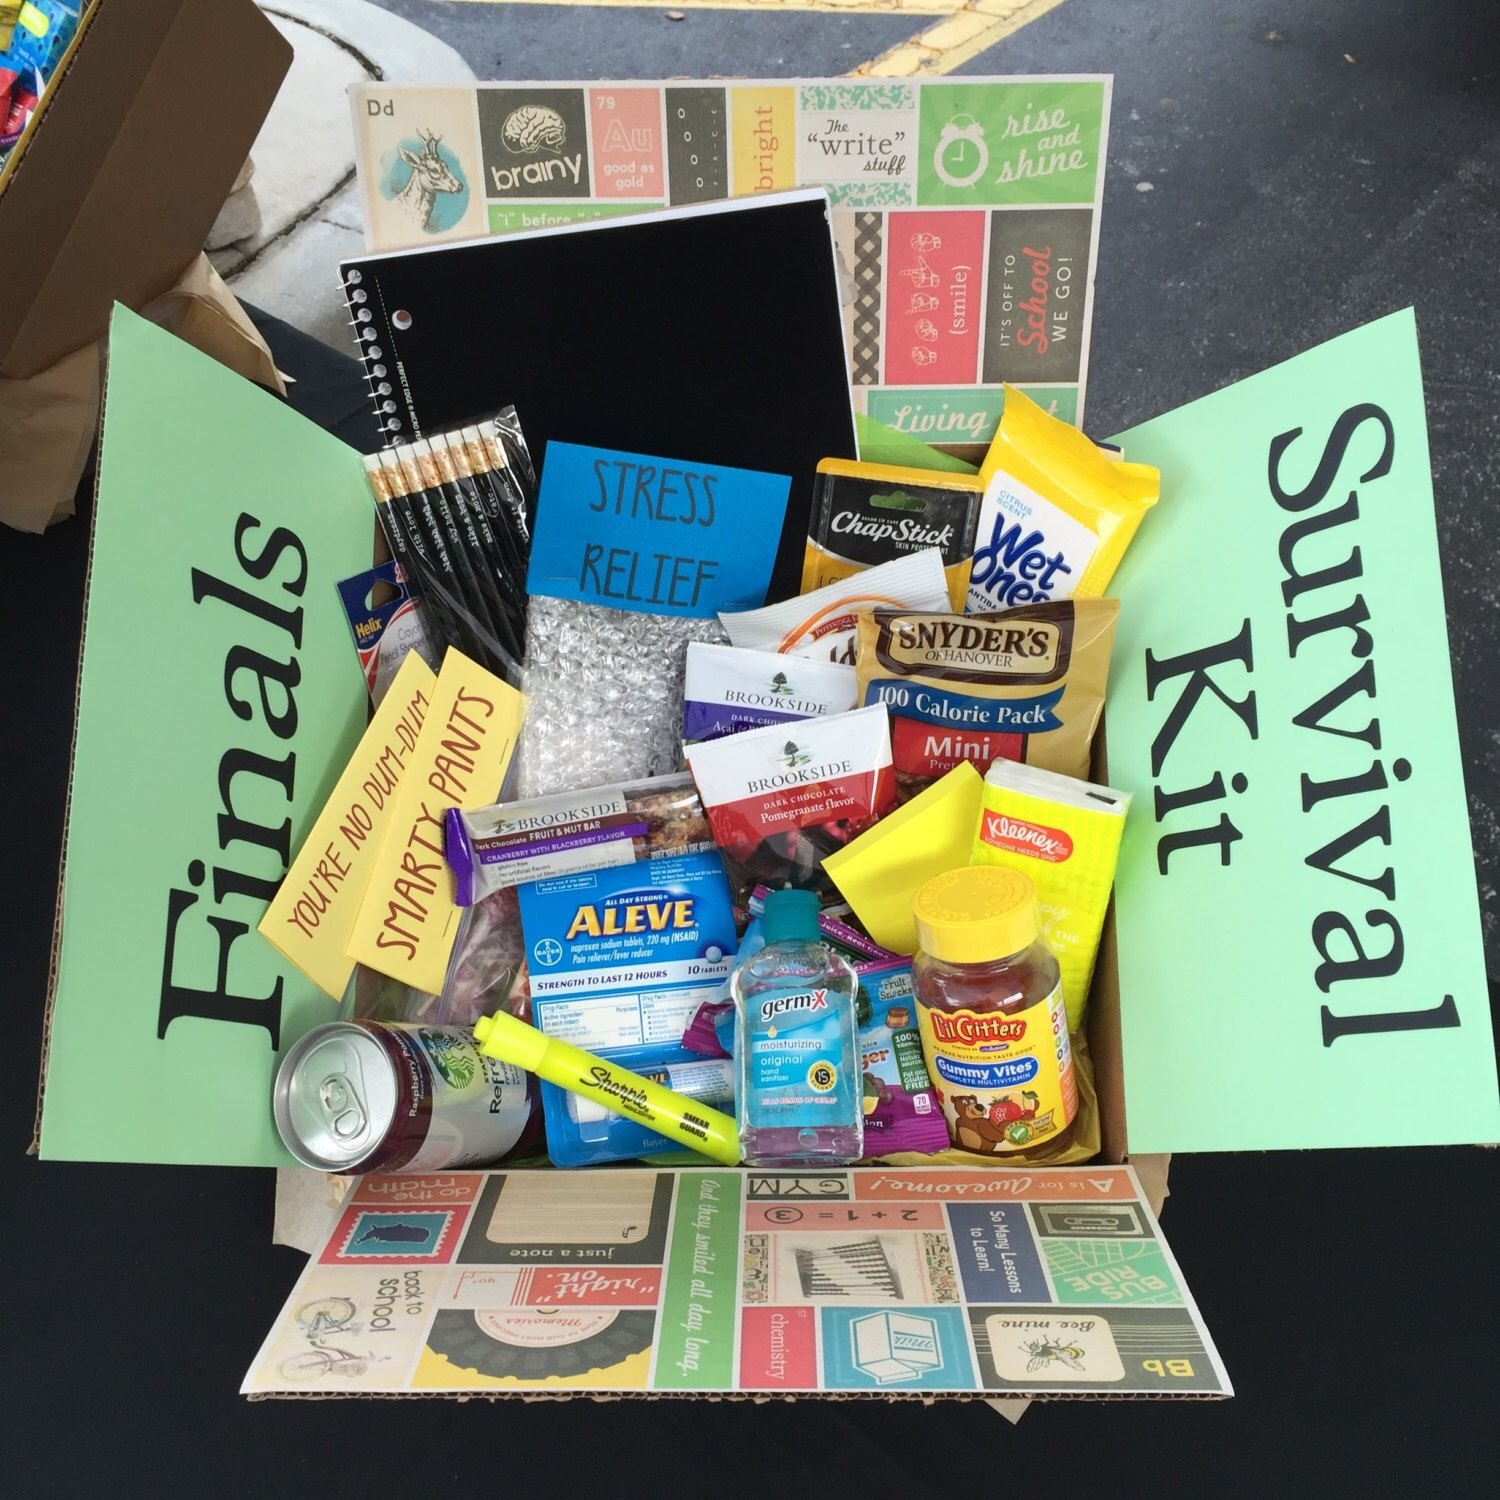 College student finals survival kit care package gift box by college student finals survival kit care package gift box by hellolittlebox on etsy https negle Images